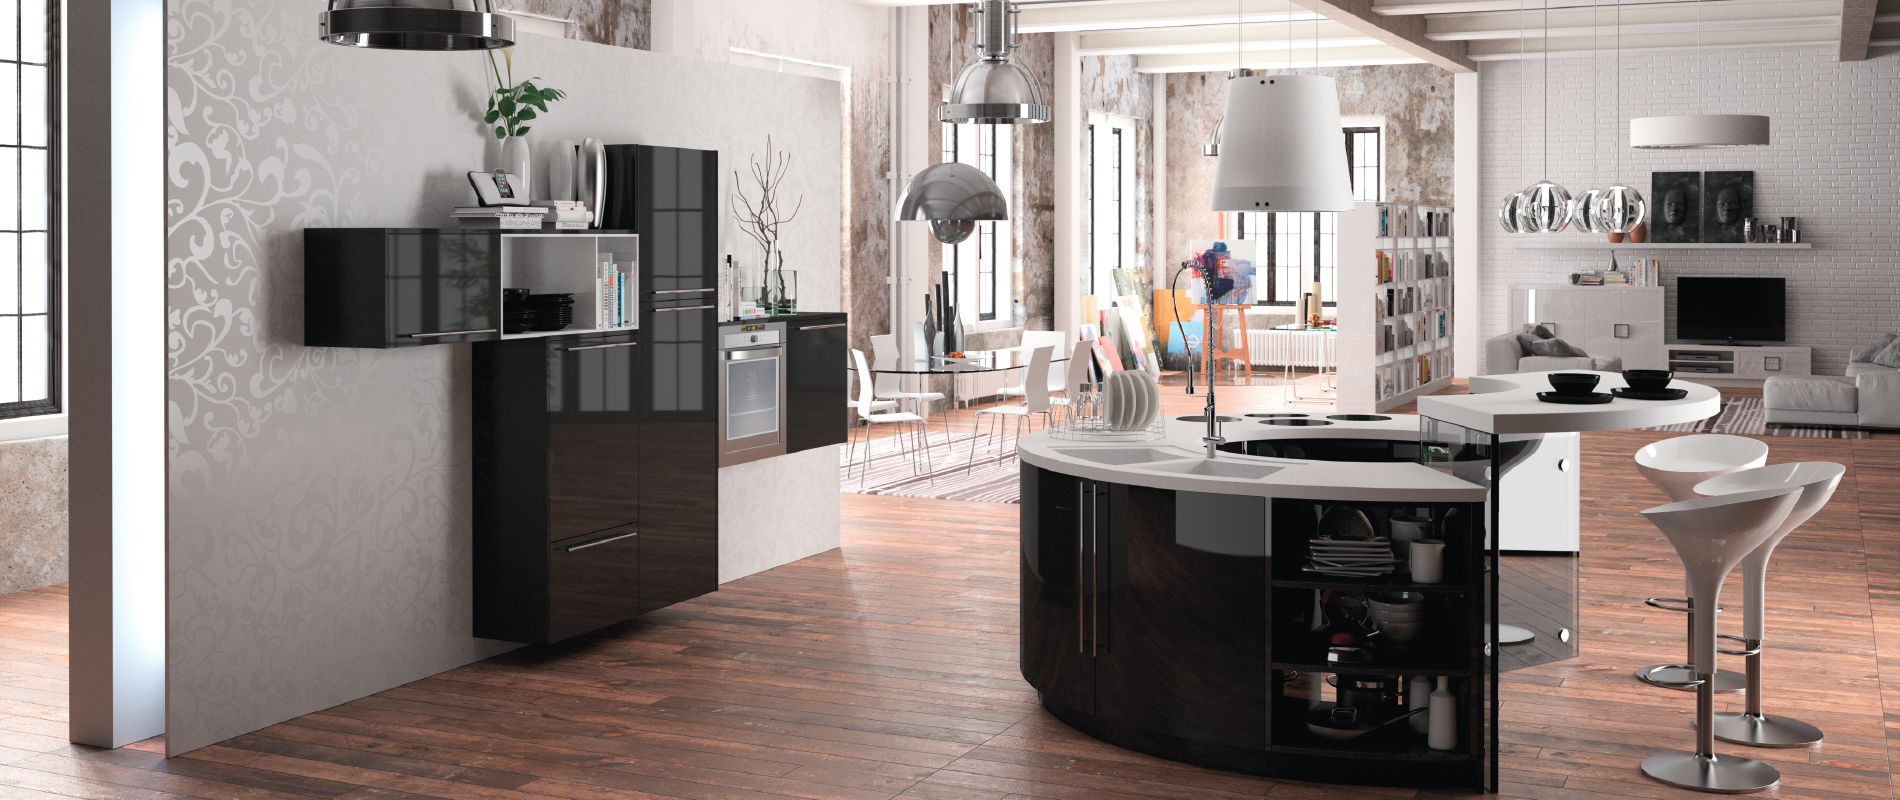 belle cuisine design ronde alicante 5 haut de gamme. Black Bedroom Furniture Sets. Home Design Ideas